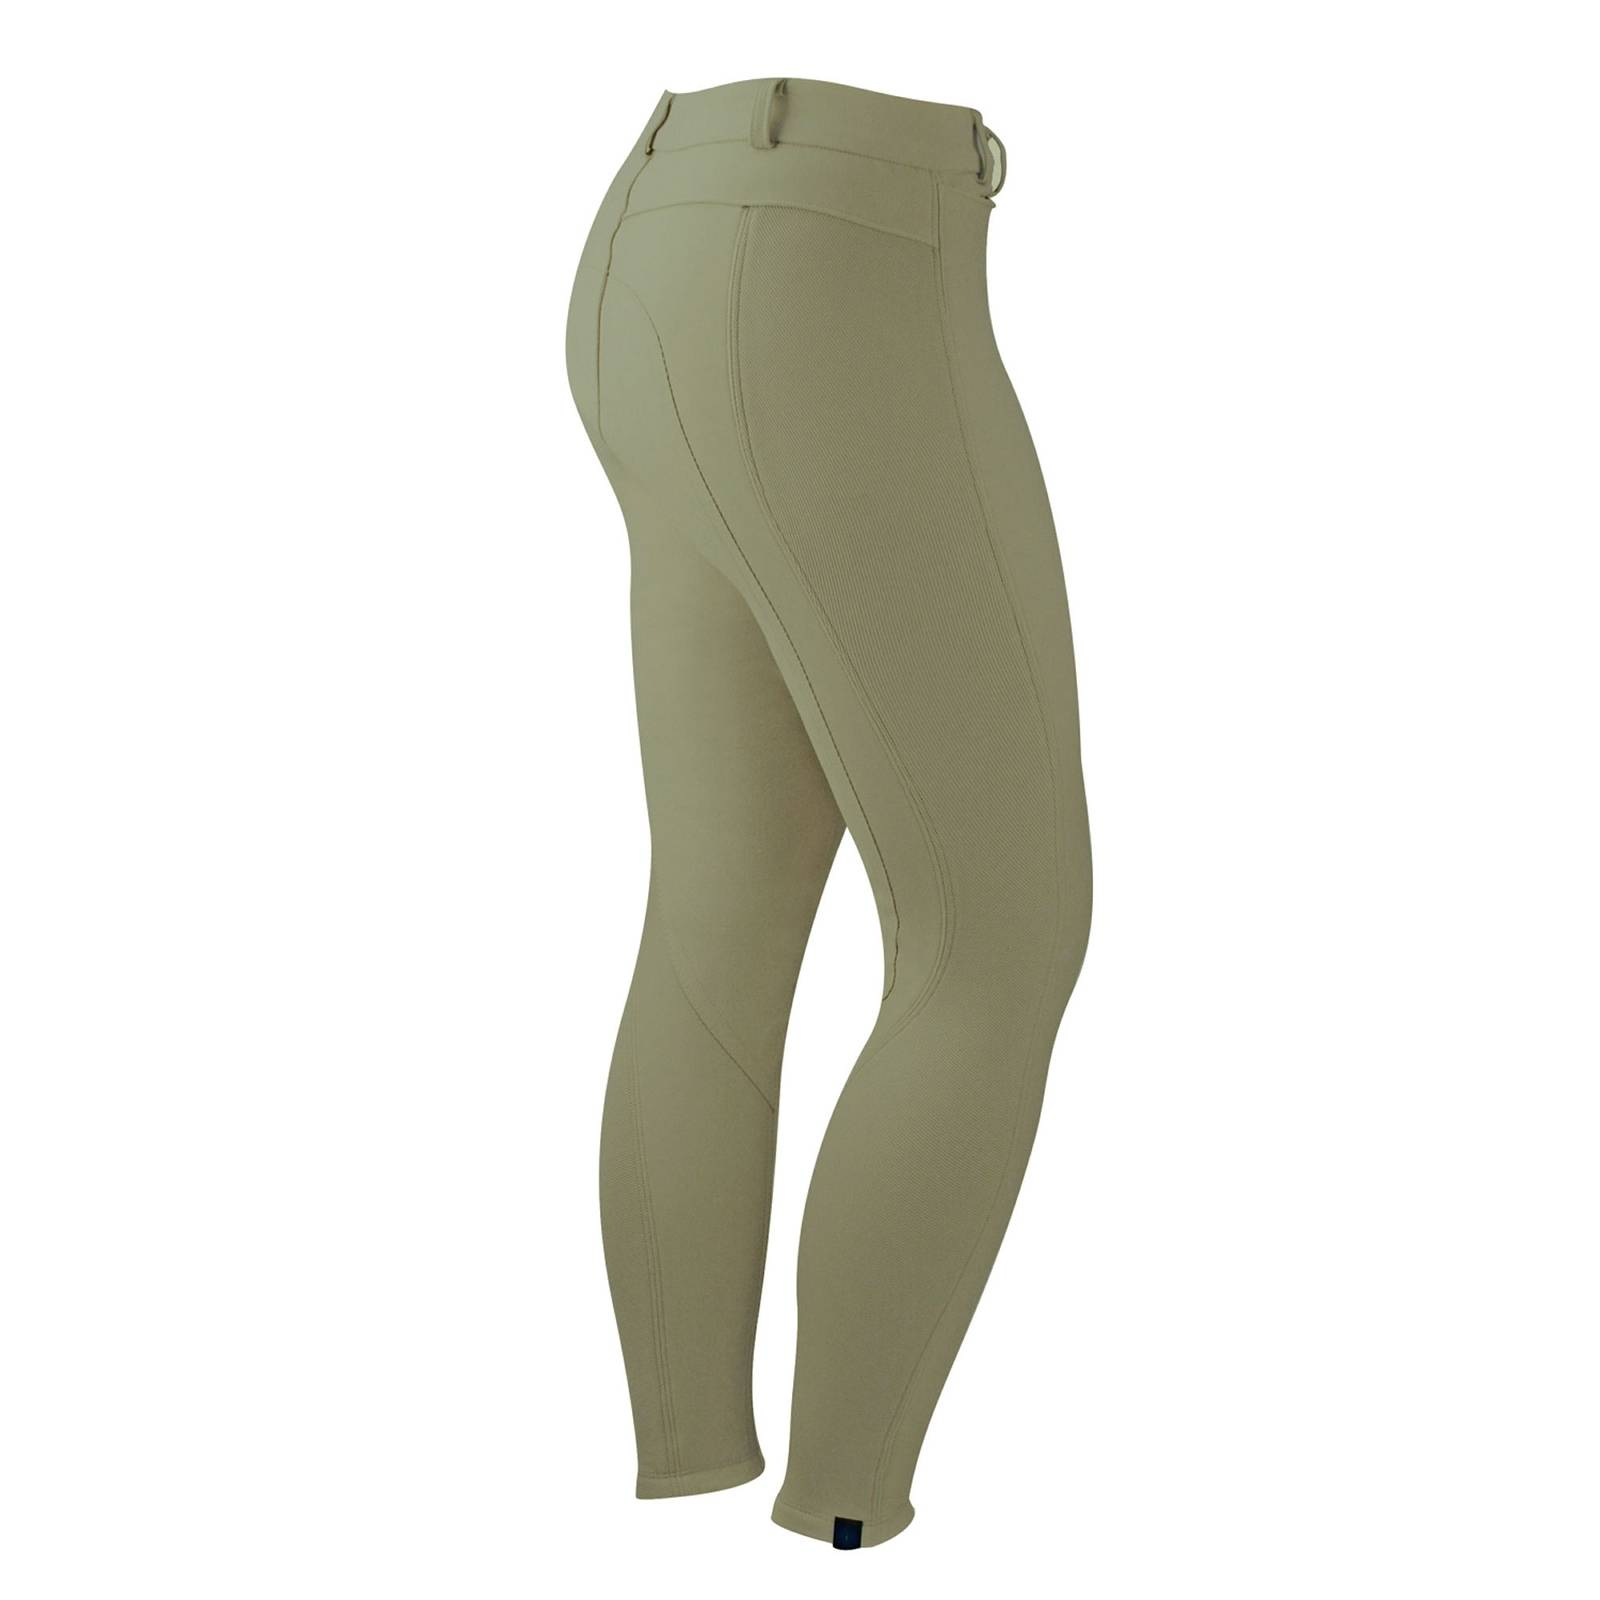 Irideon Ladies Passeio Full Seat Breeches